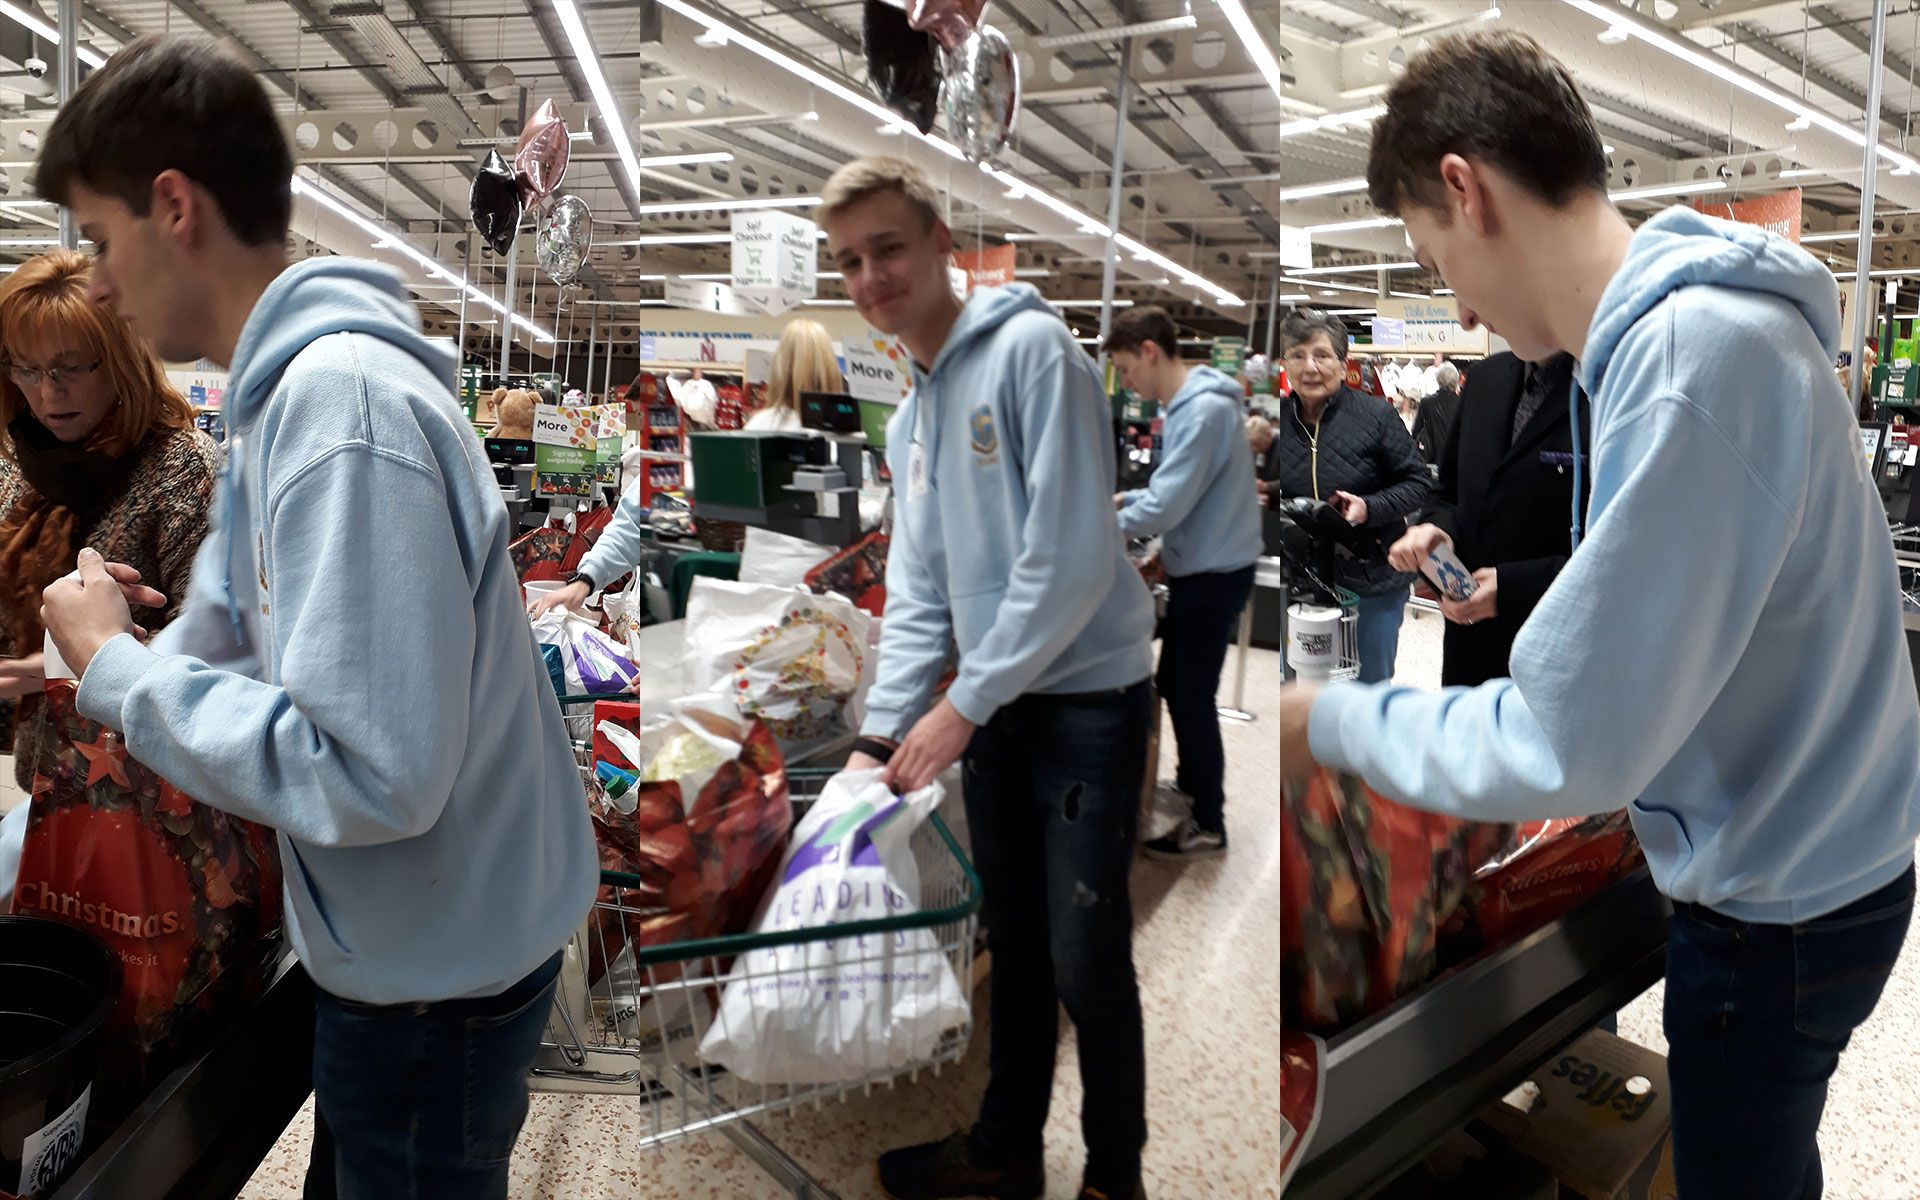 We had a brilliant day bag packing at Morrison's in December. Members of the youth Council, Valley Youth Club and Students from Worksop College helped us.